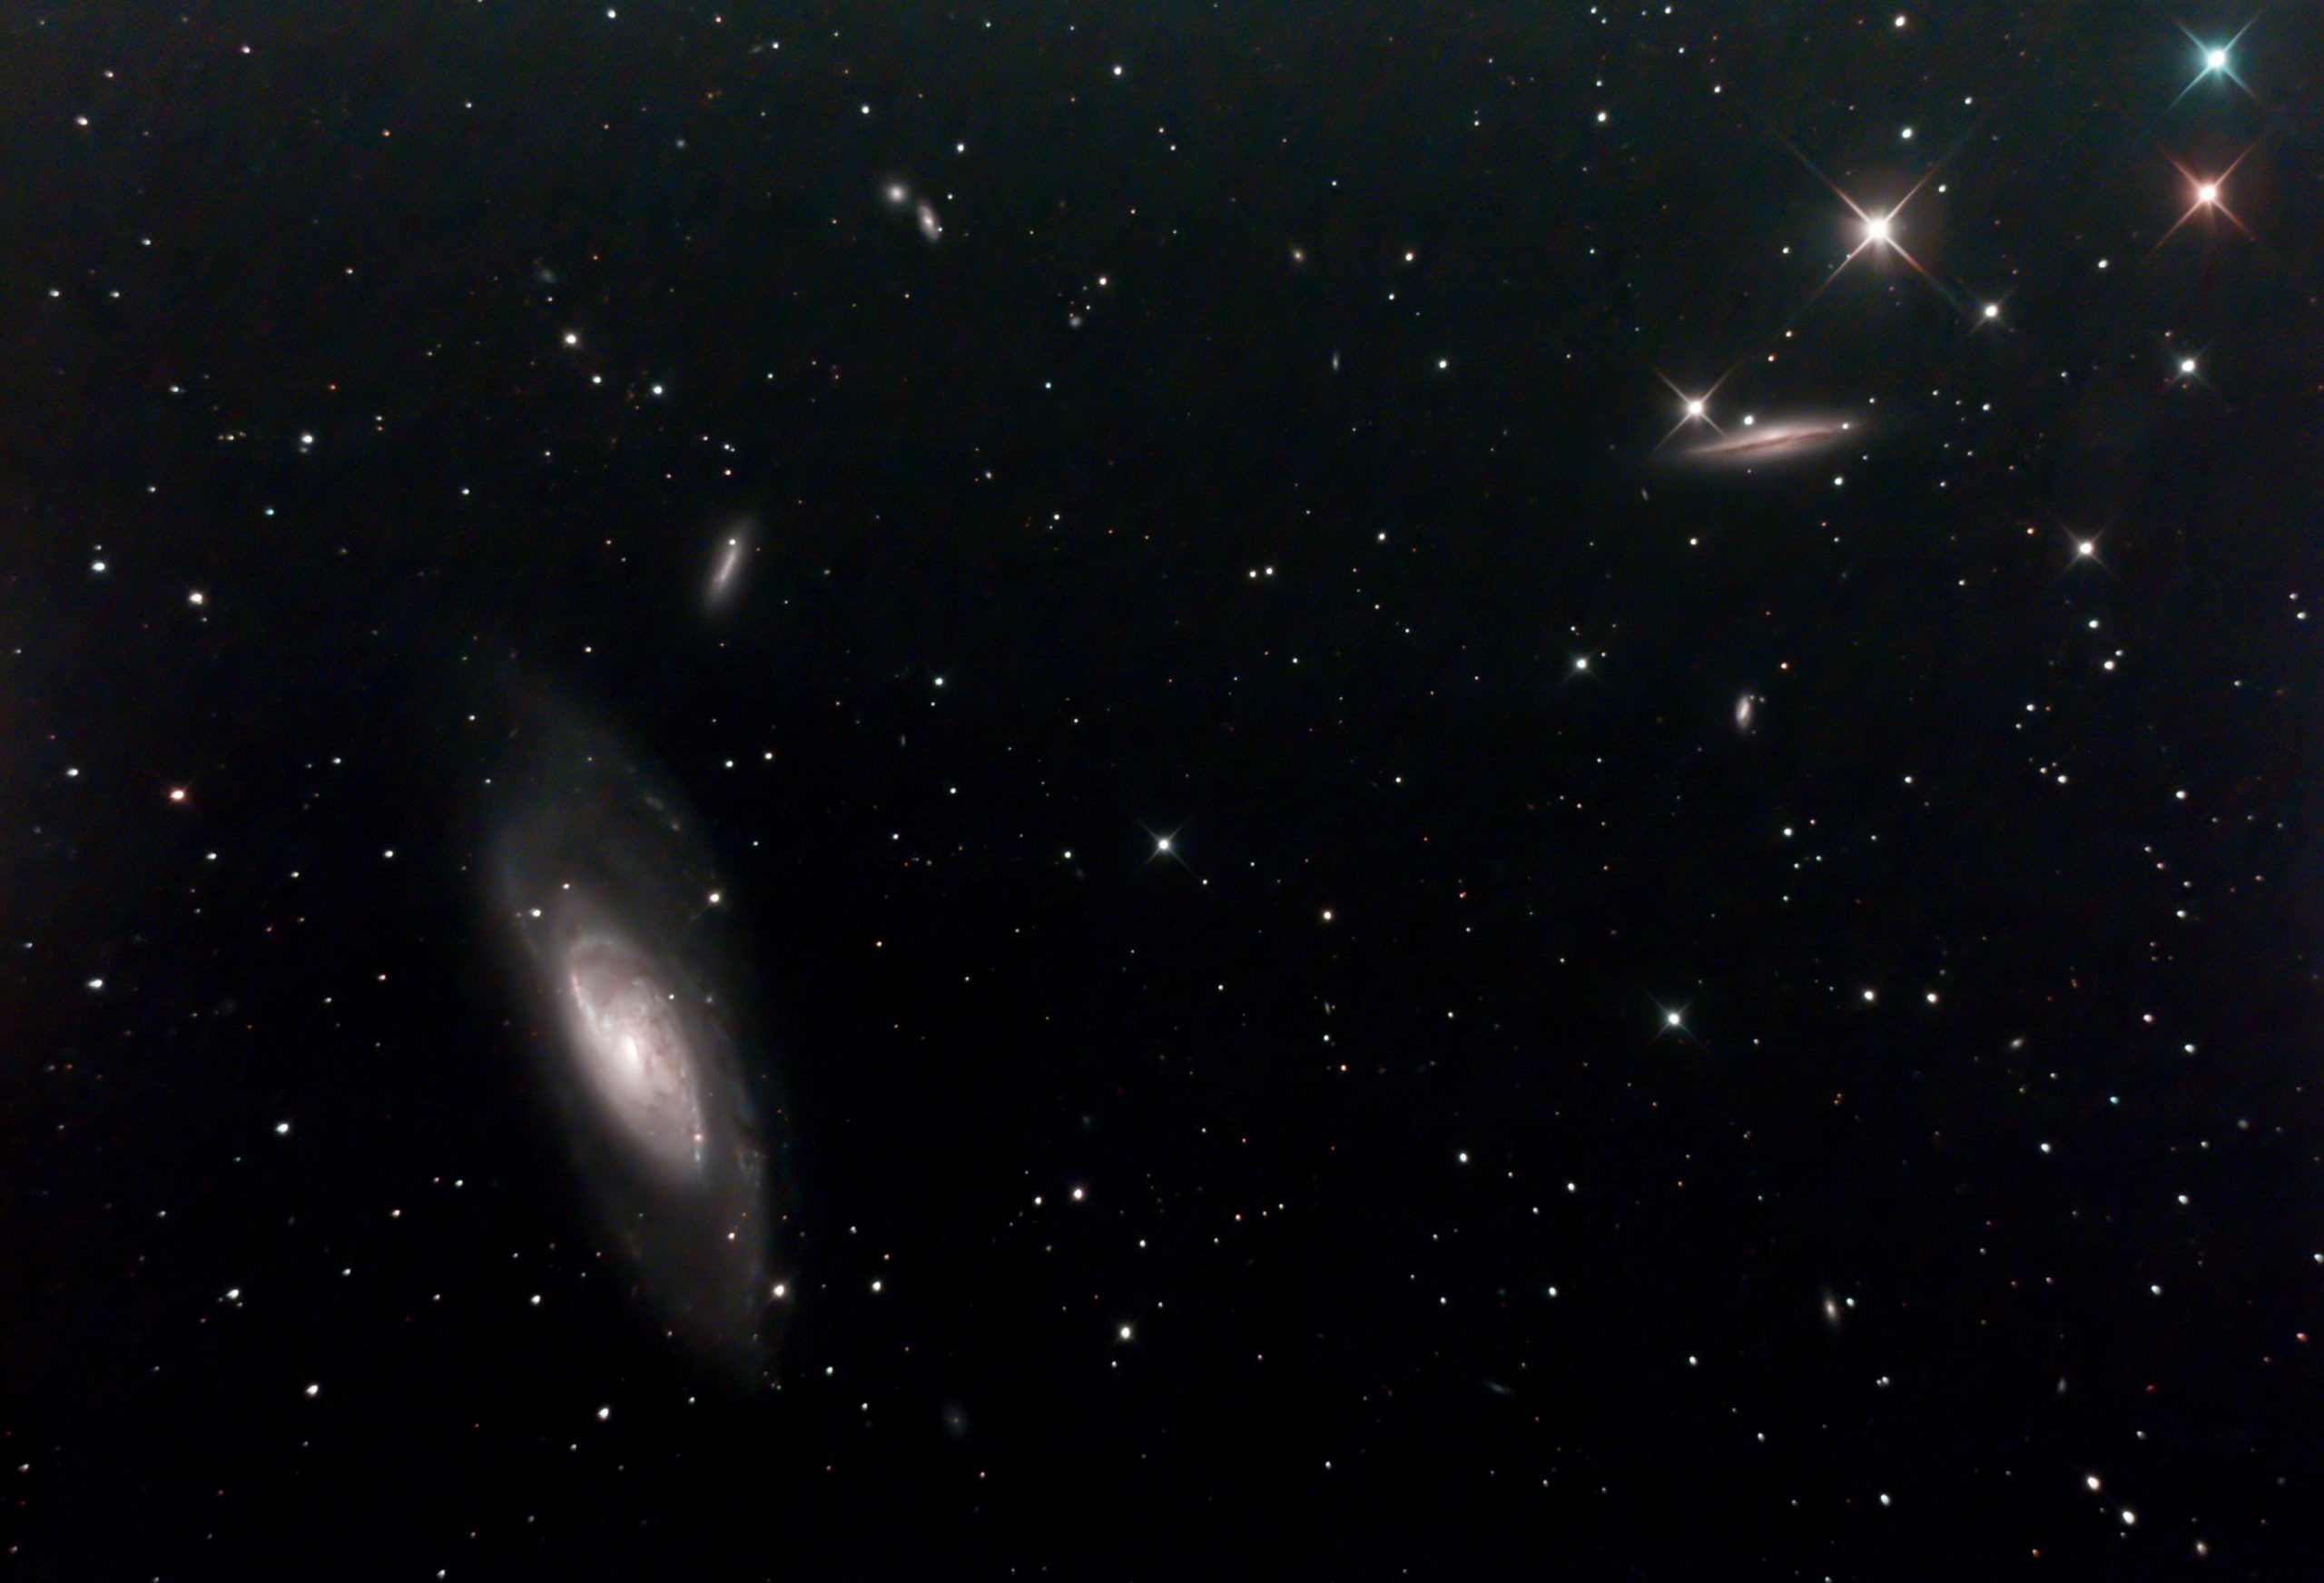 M106 Et Al (Ian A Smith) M106 and at least 8 neighbouring (on sky) galaxies such as NGC 4217, NGC 4248, NGC 4226, NGC 4232 and NGC 4231 . Skywatcher 200p on NEQ6 mount, with guiding and dithering. Canon 100d modified DSLR with Optolong CLS-CCD filter. 37 five minute exposures at ISO 800 (3 hours 5 minutes), 5 dark frames, 10 flat fields, 14 bias frames. 24th April 2020. Overnight temperatures were a bit higher than winter, leading to more noise in the image. Worth a return visit!